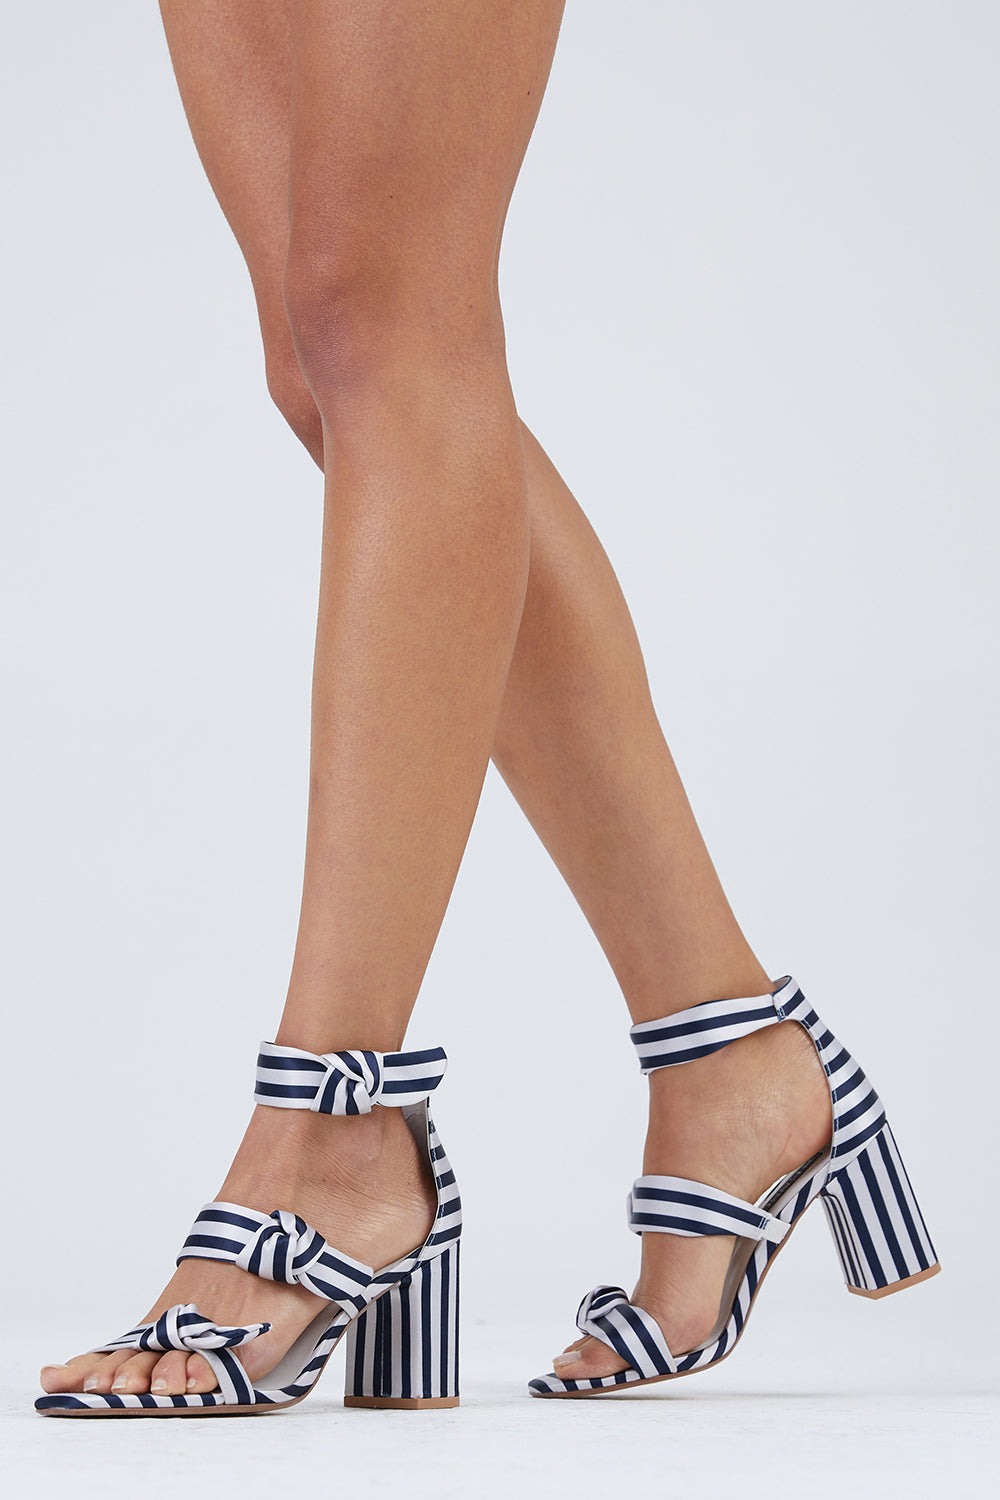 51f62ff0001e ... SENSO Melvy II Triple Strap Heel Sandals - Midnight Stripe Print -  undefined undefined